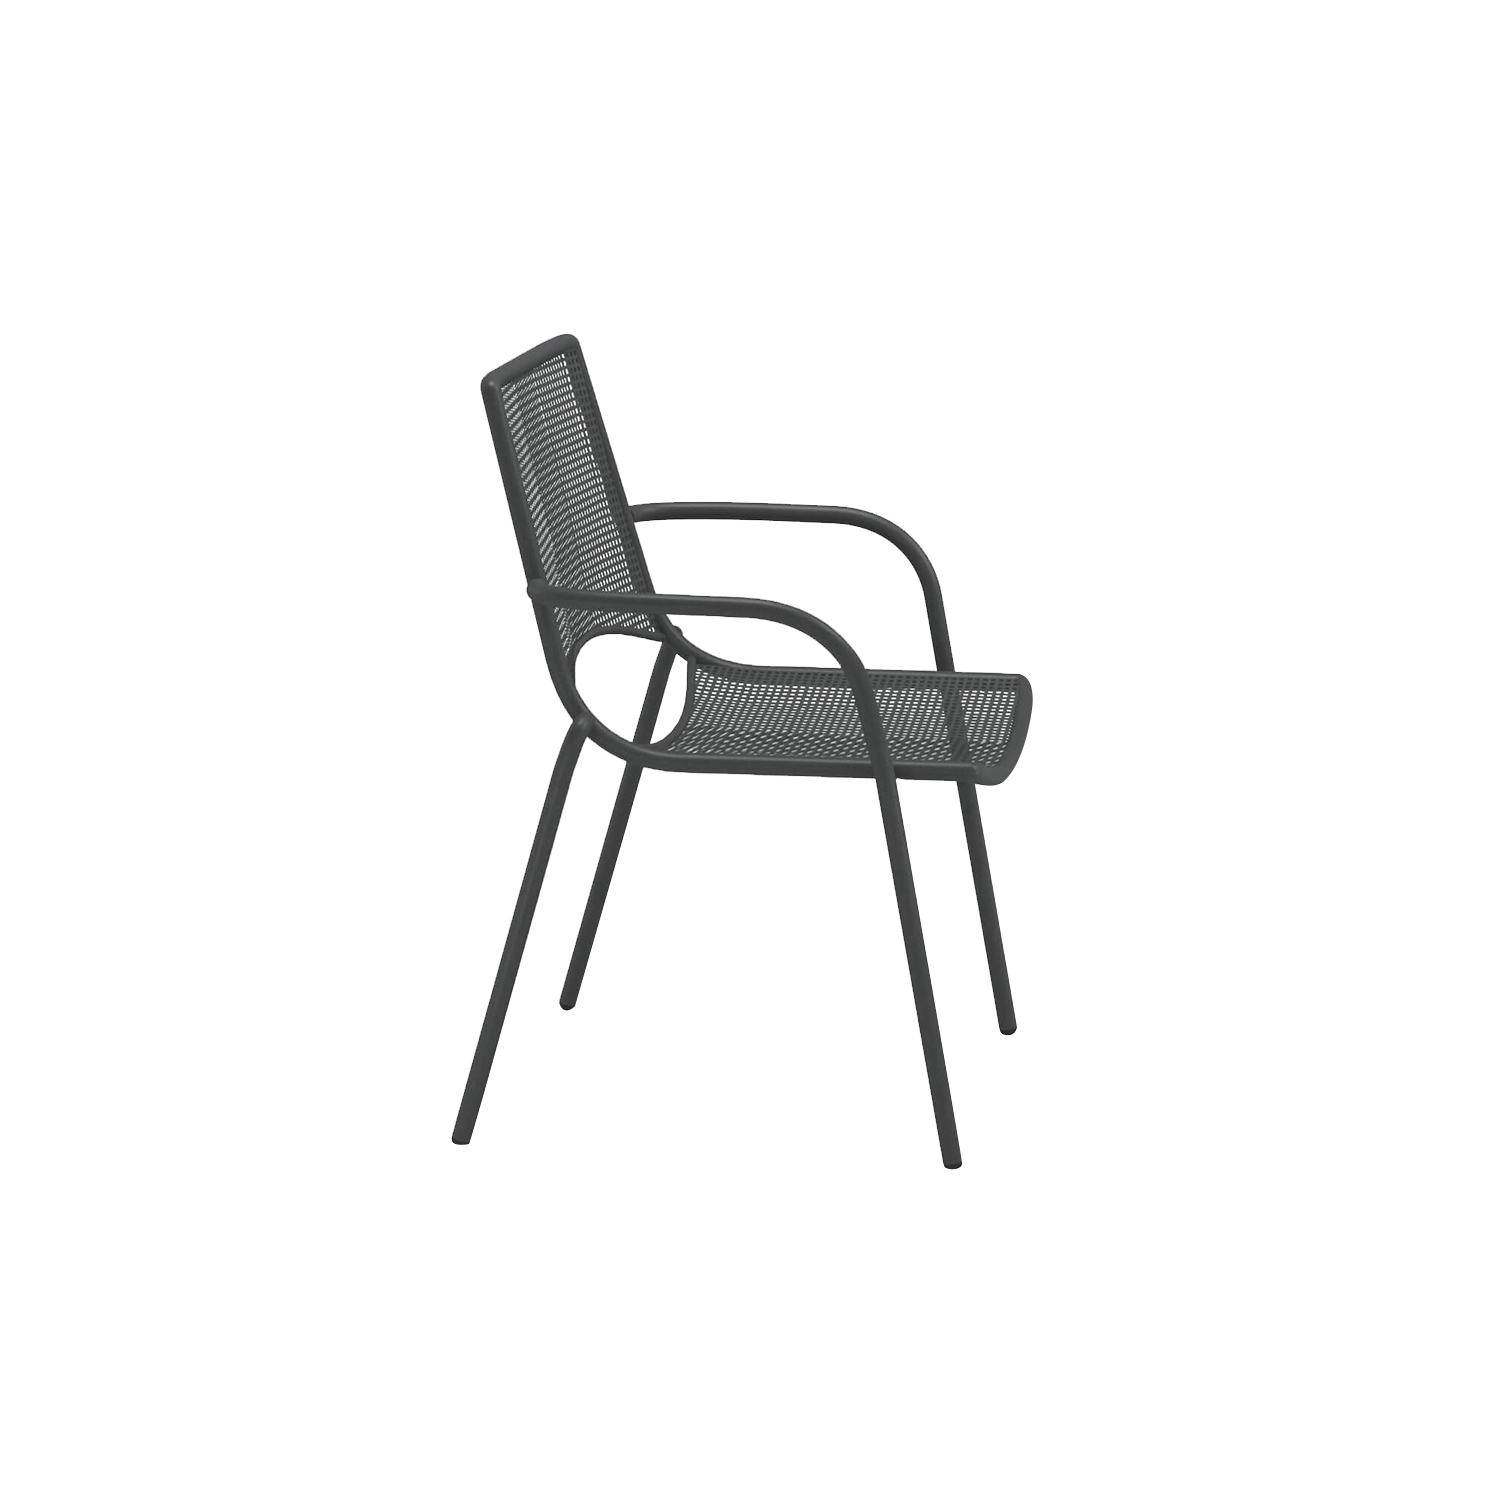 Ala Armchair - Set of 4 - <p>Soft and light steel collection, Ala is extremely versatile and fits perfectly in every environment. Presenting a chair and an armchair, Ala furnishes all kind of outdoor spaces with personality.</p>The Ala Armchair has a frame made from steel and a seat and back in hot galvanised painted simulated woven wire mesh and comes in four different finishes. This Armchair can be placed outside. Please enquire for more information.     Matter of Stuff